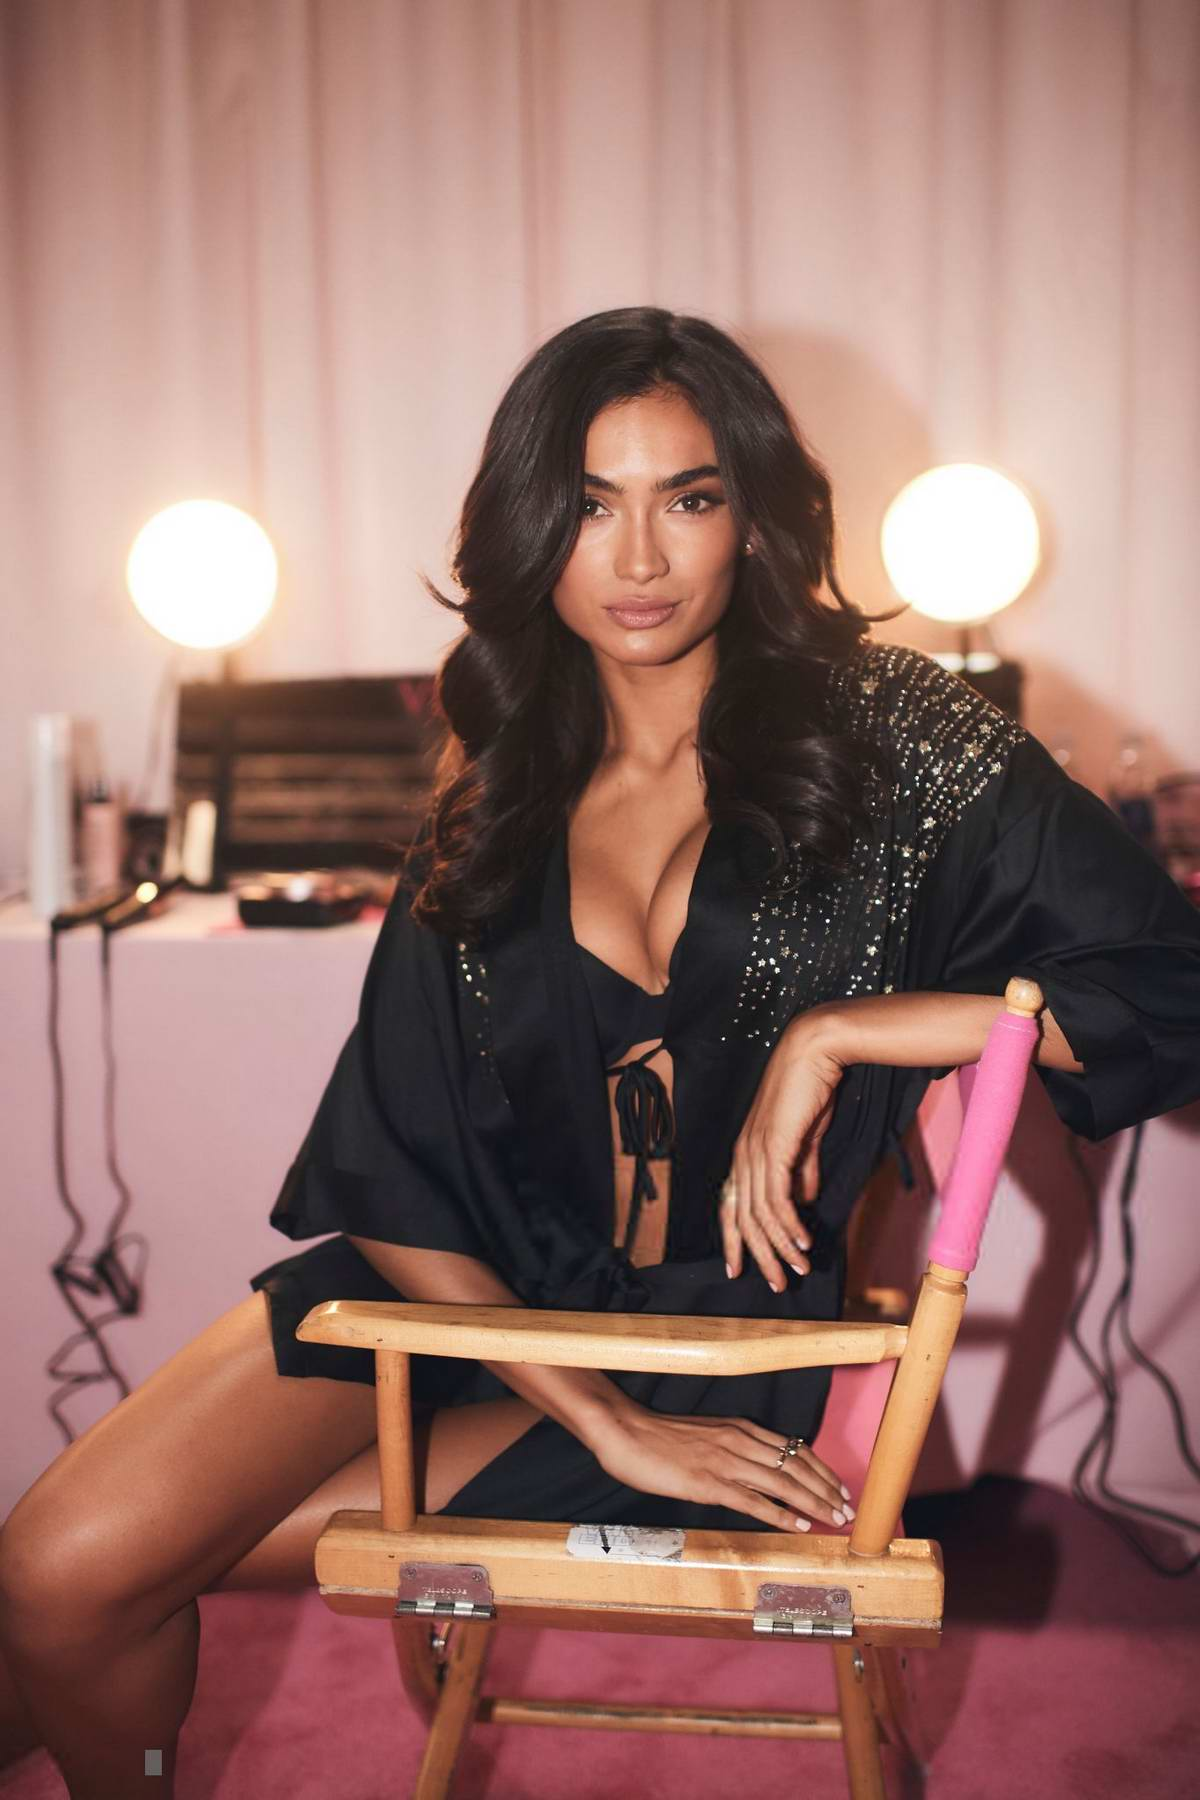 Kelly Gale seen backstage during the 2018 Victoria's Secret Fashion Show in New York City